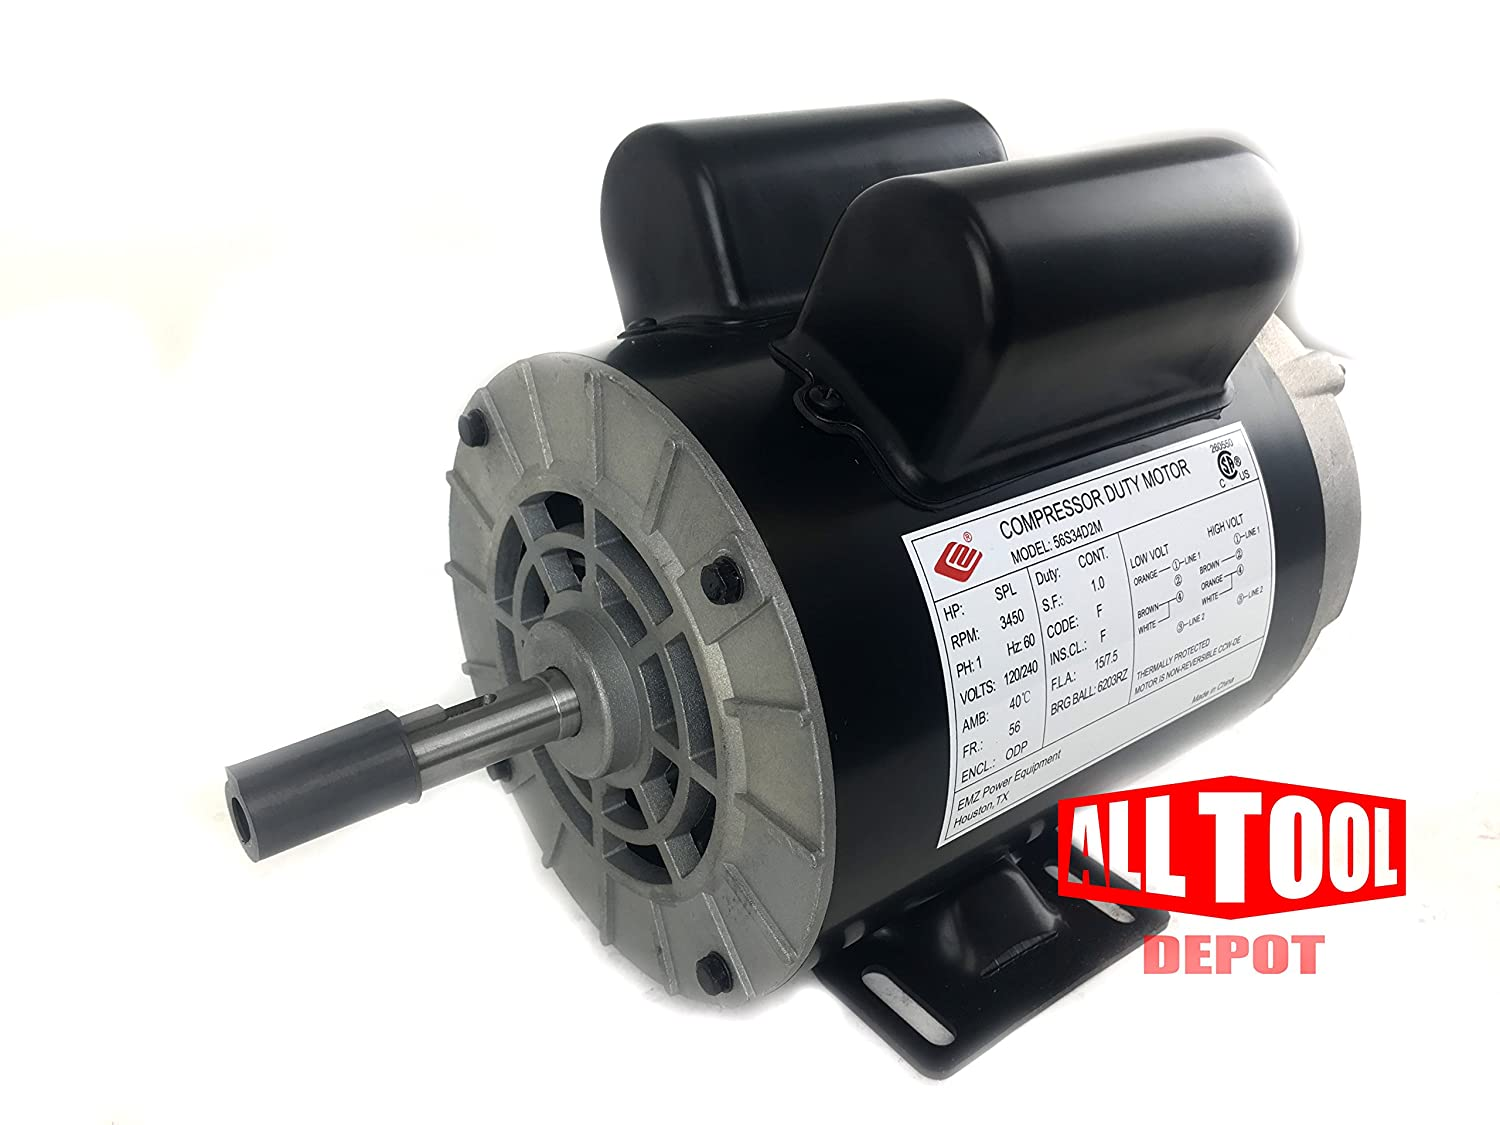 "2 HP SPL 3450 RPM, 56 Frame, 120/240V, 15/7.5Amp 5/8"" Shaft, Single Phase NEMA Air Compressor Motor - EM-02"